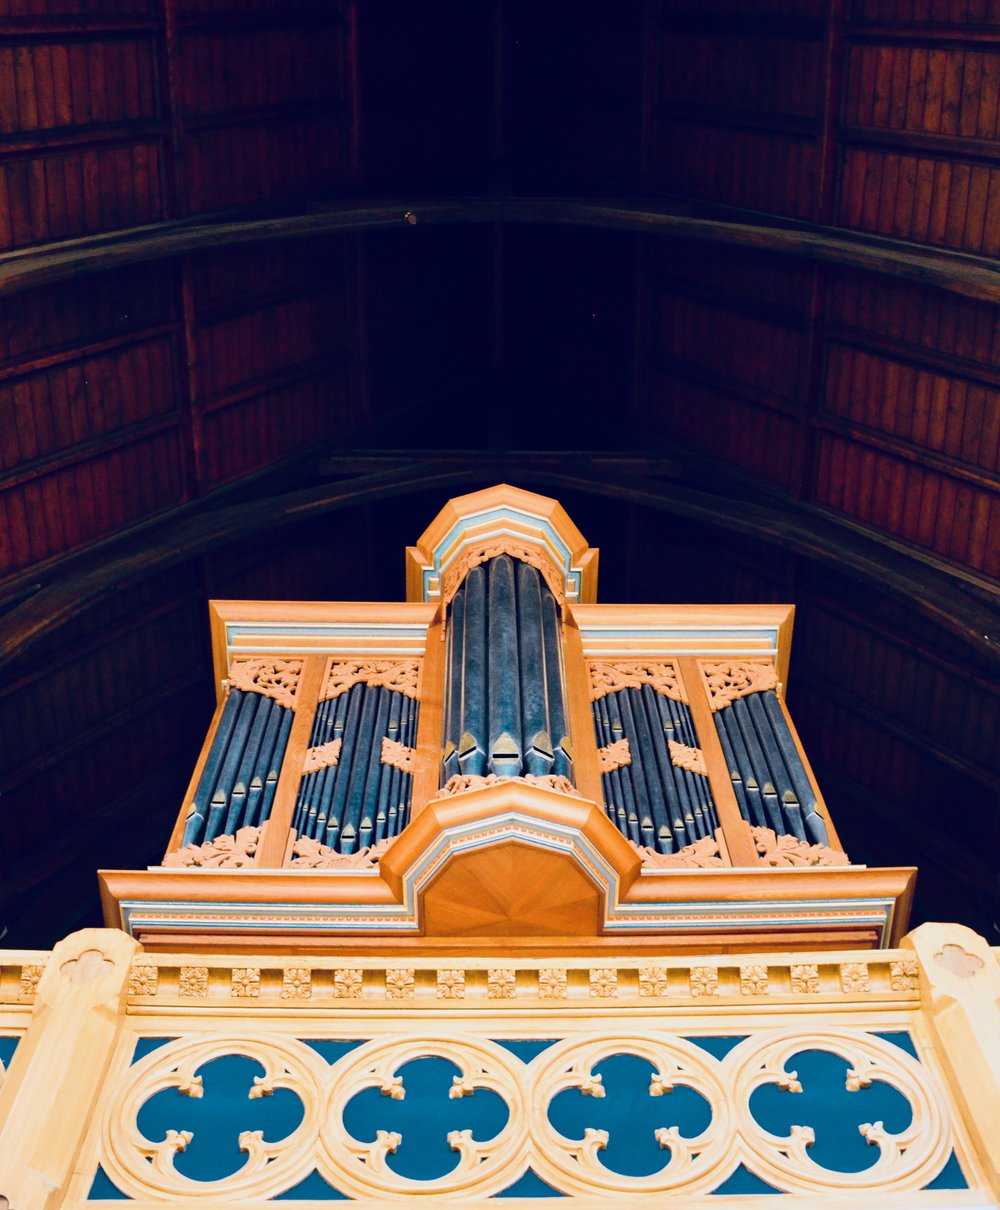 1992 Brombaugh organ, Haga Church, Göteborg, Sweden.